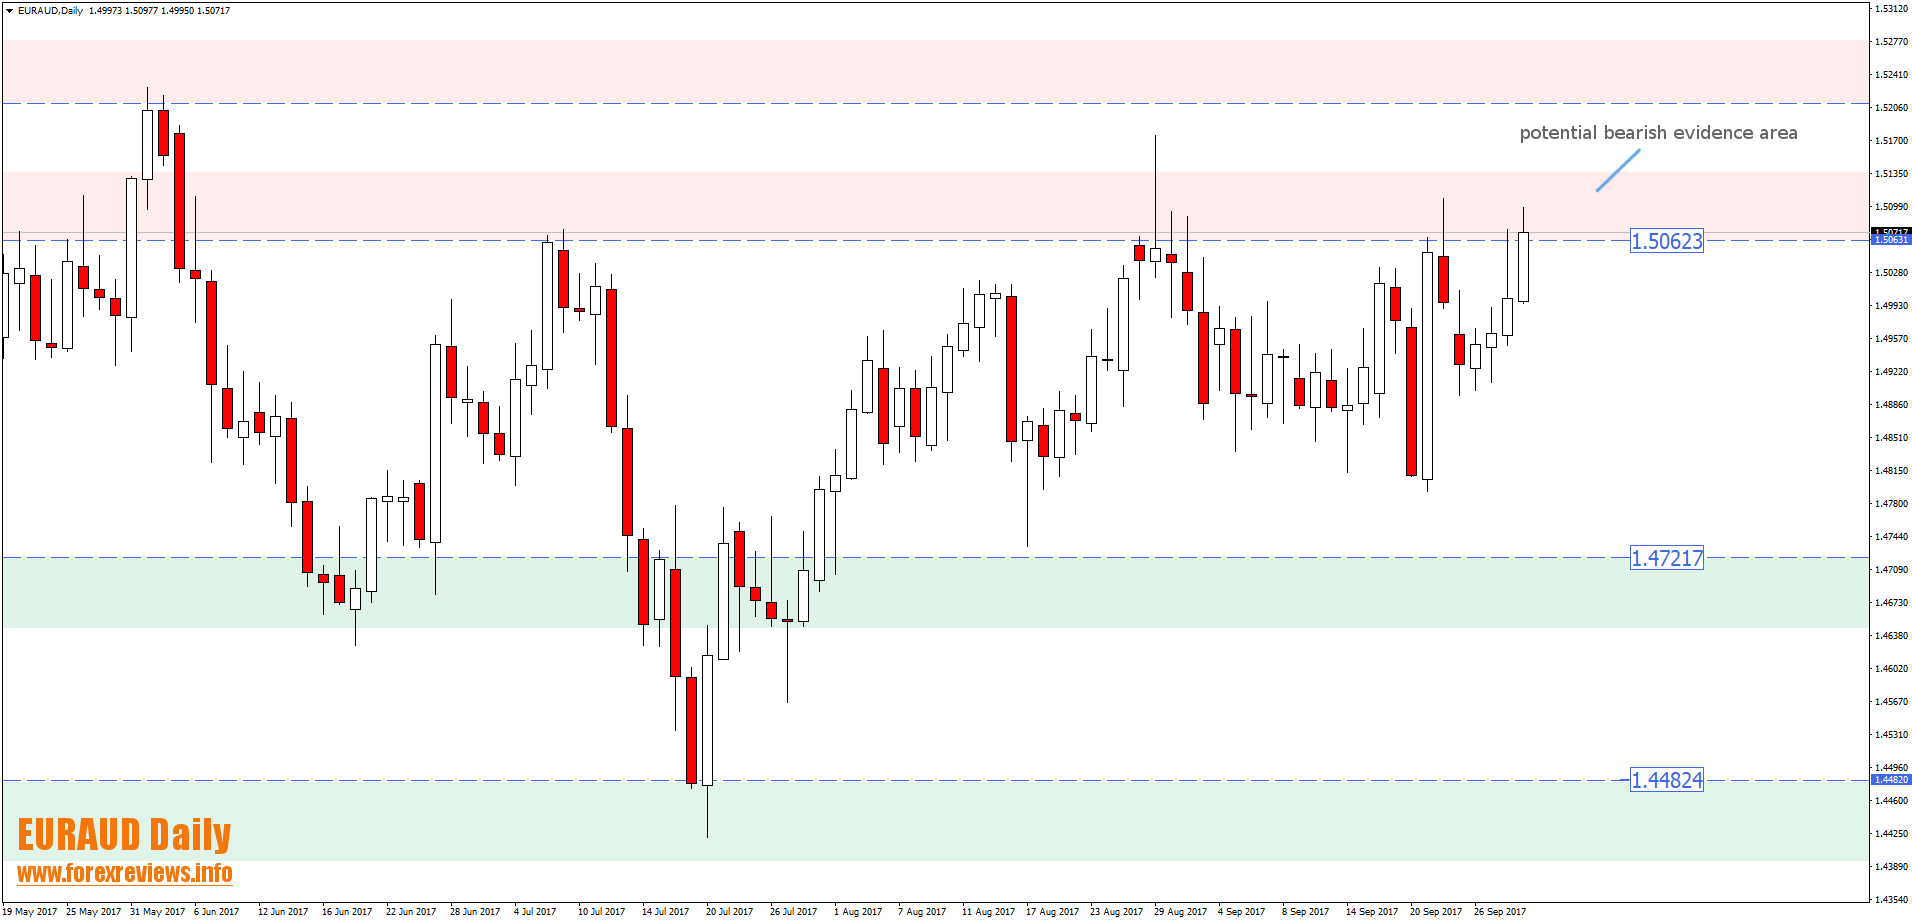 euraud daily potential bearish evidence area